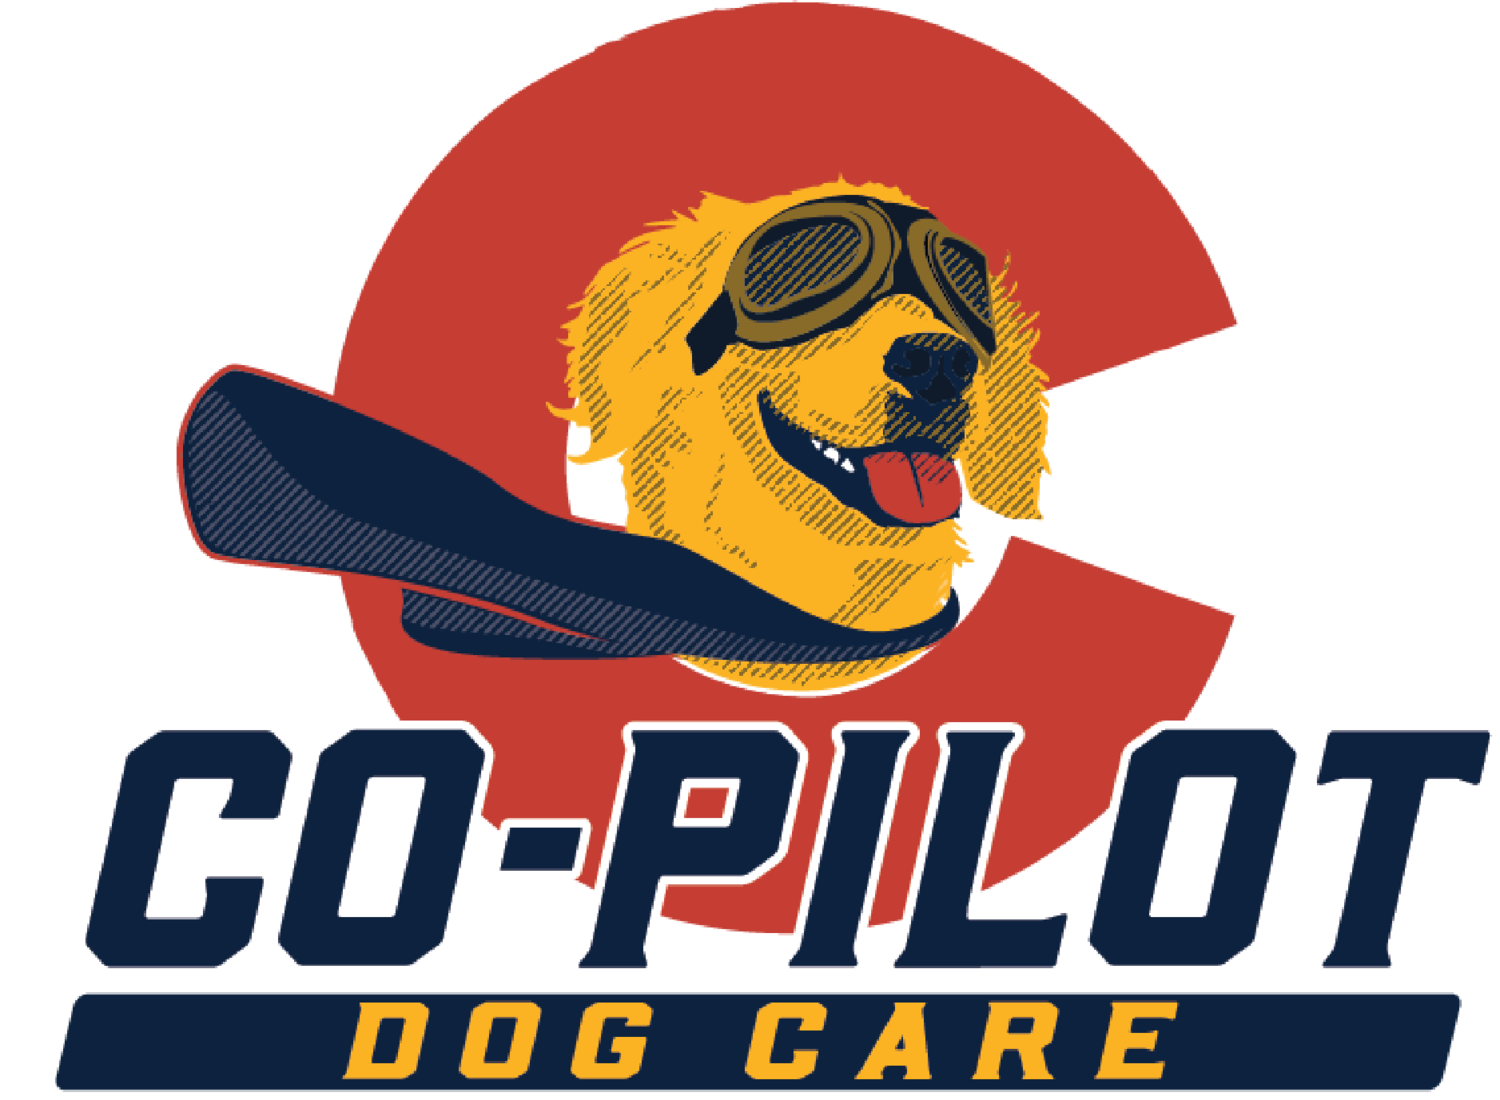 Co-Pilot Dog Care